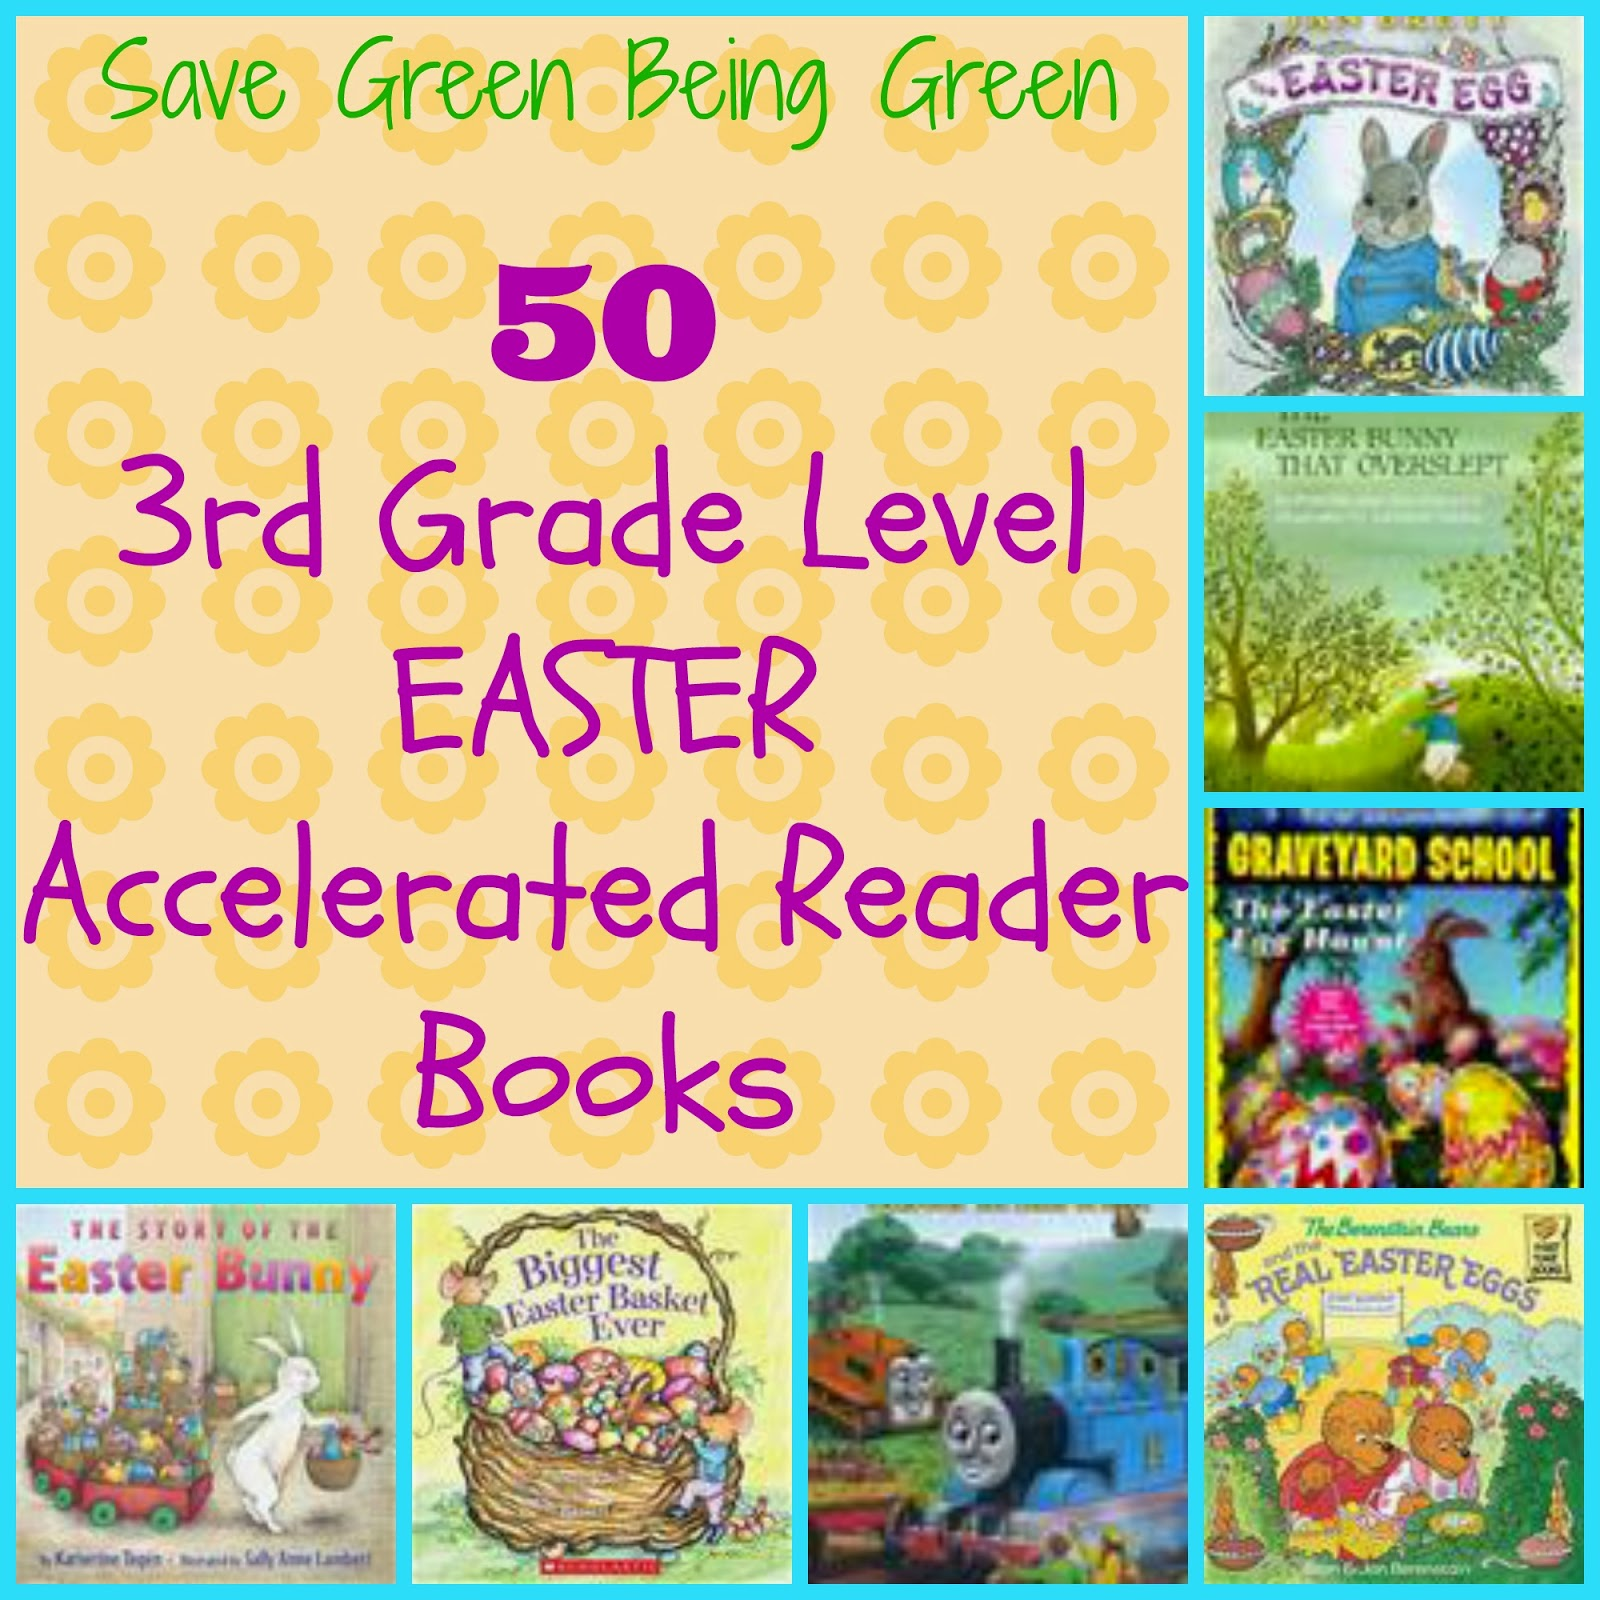 Save Green Being Green: 50 Third Grade Level Easter AR Books